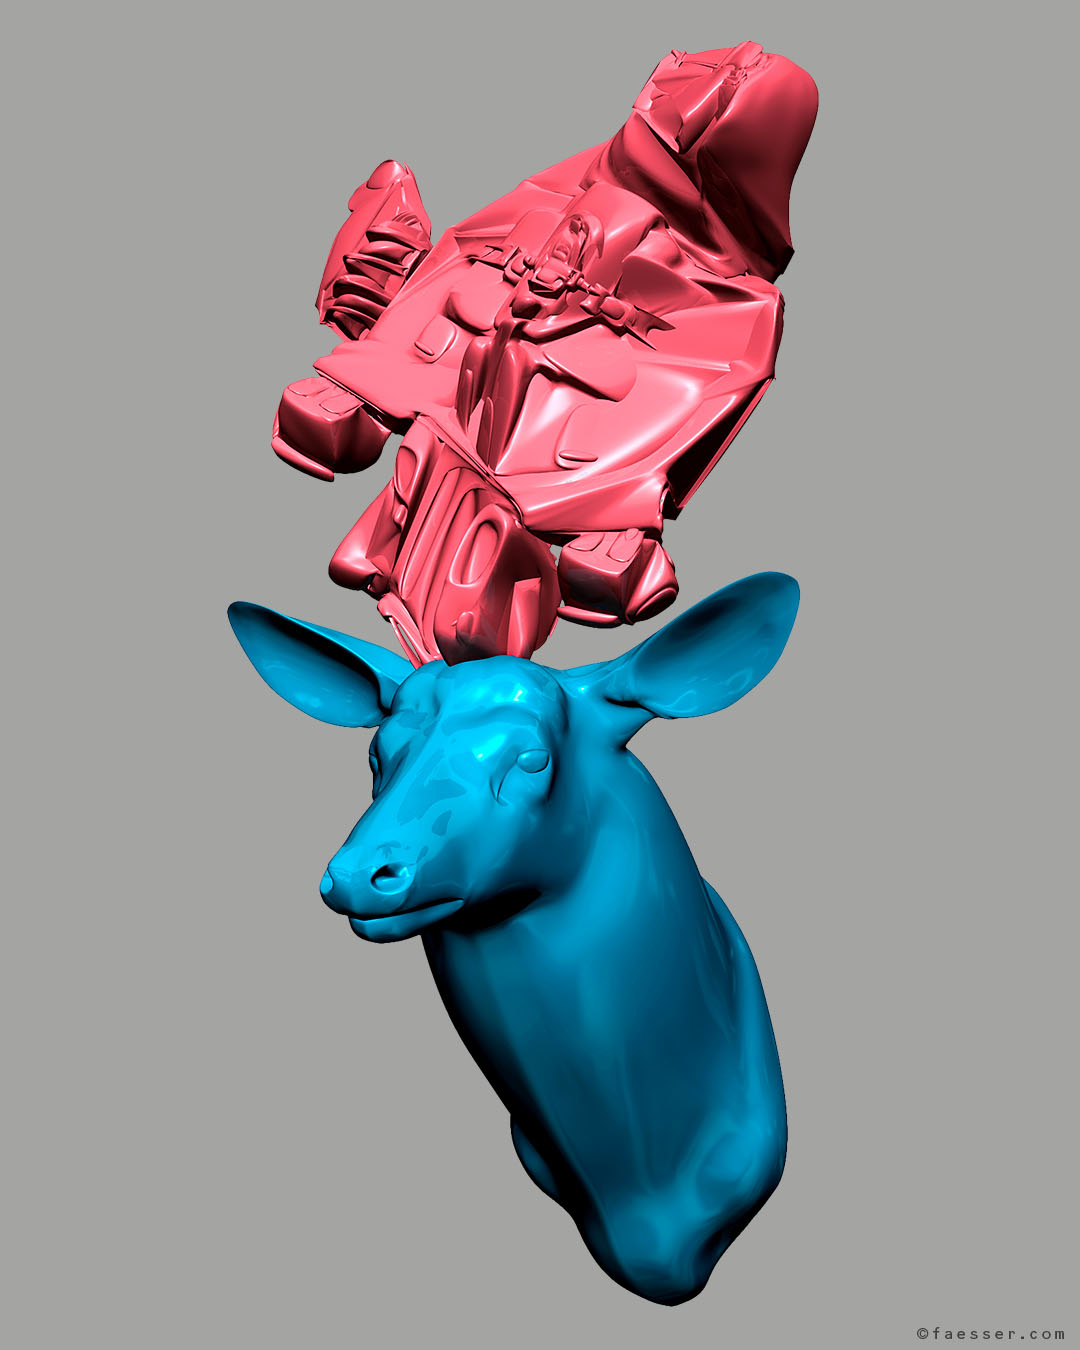 Recycling: Light blue deer trophy with melt packaging as antlers; work of art as figurative sculpture; artist Roland Faesser, sculptor and painter 2017